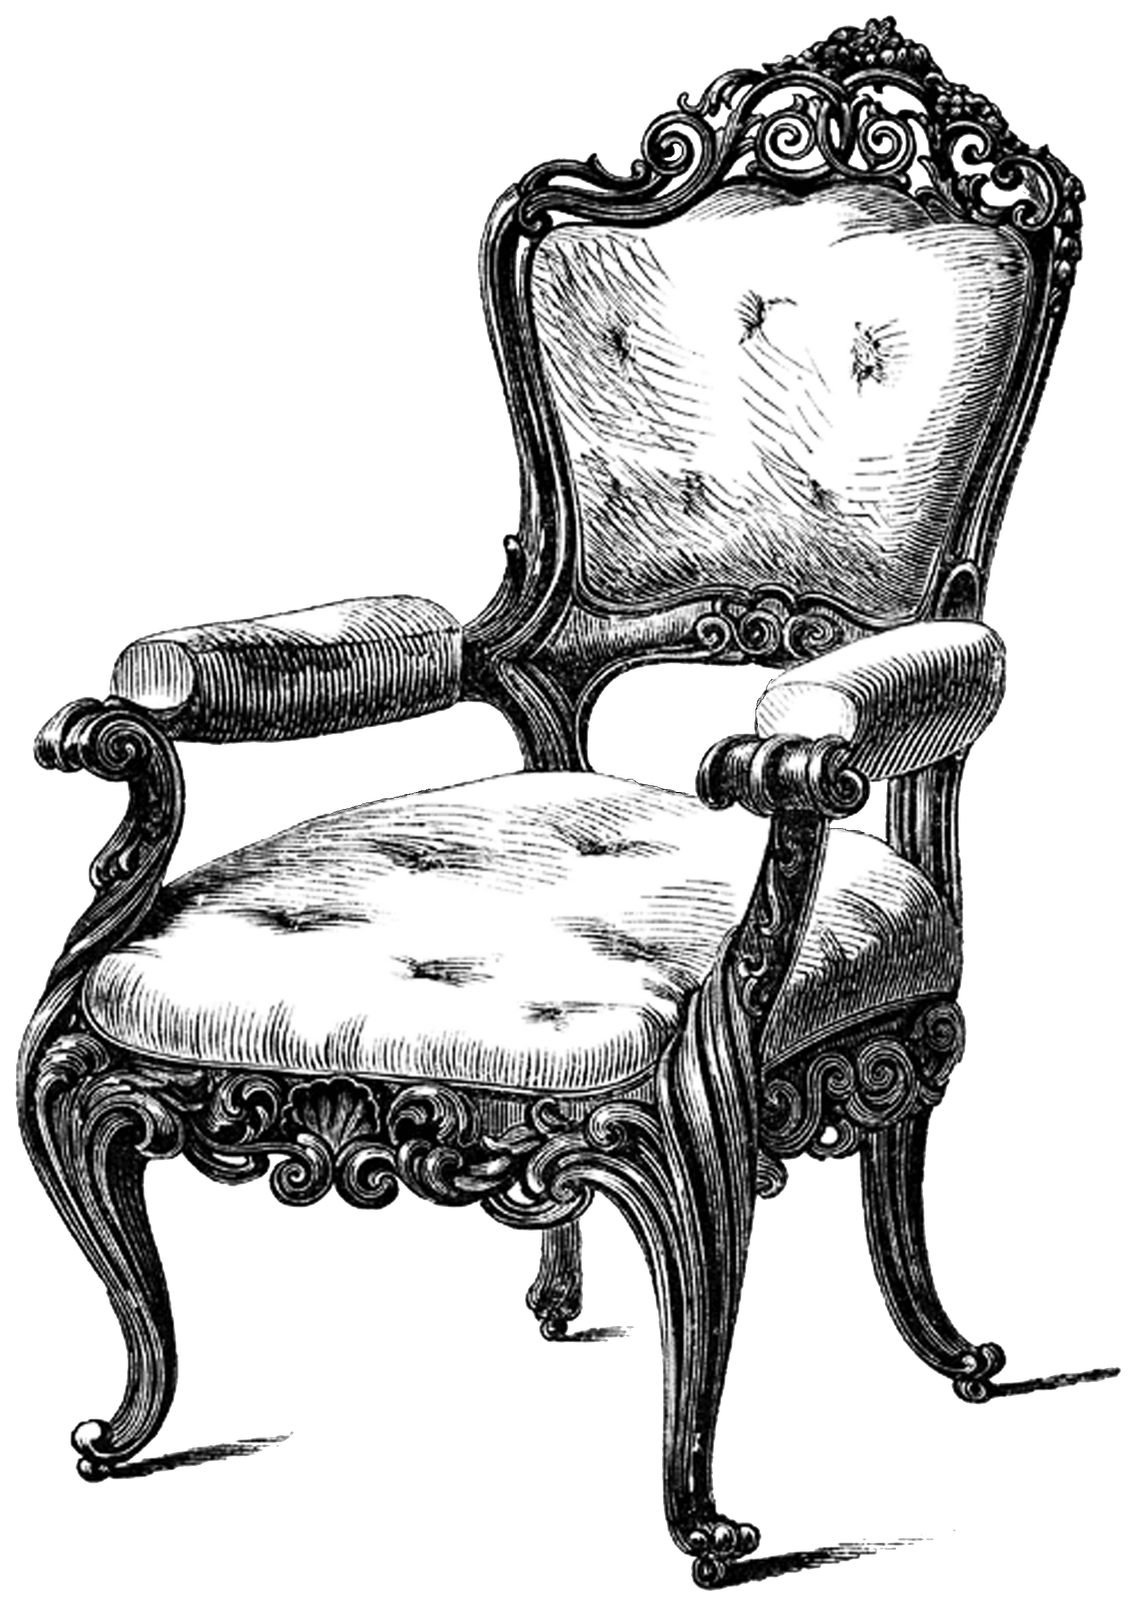 Antique chair silhouette - Tons Of Free Yummy Vintage Furniture Printables To Use For All Of Your Crafty Projects